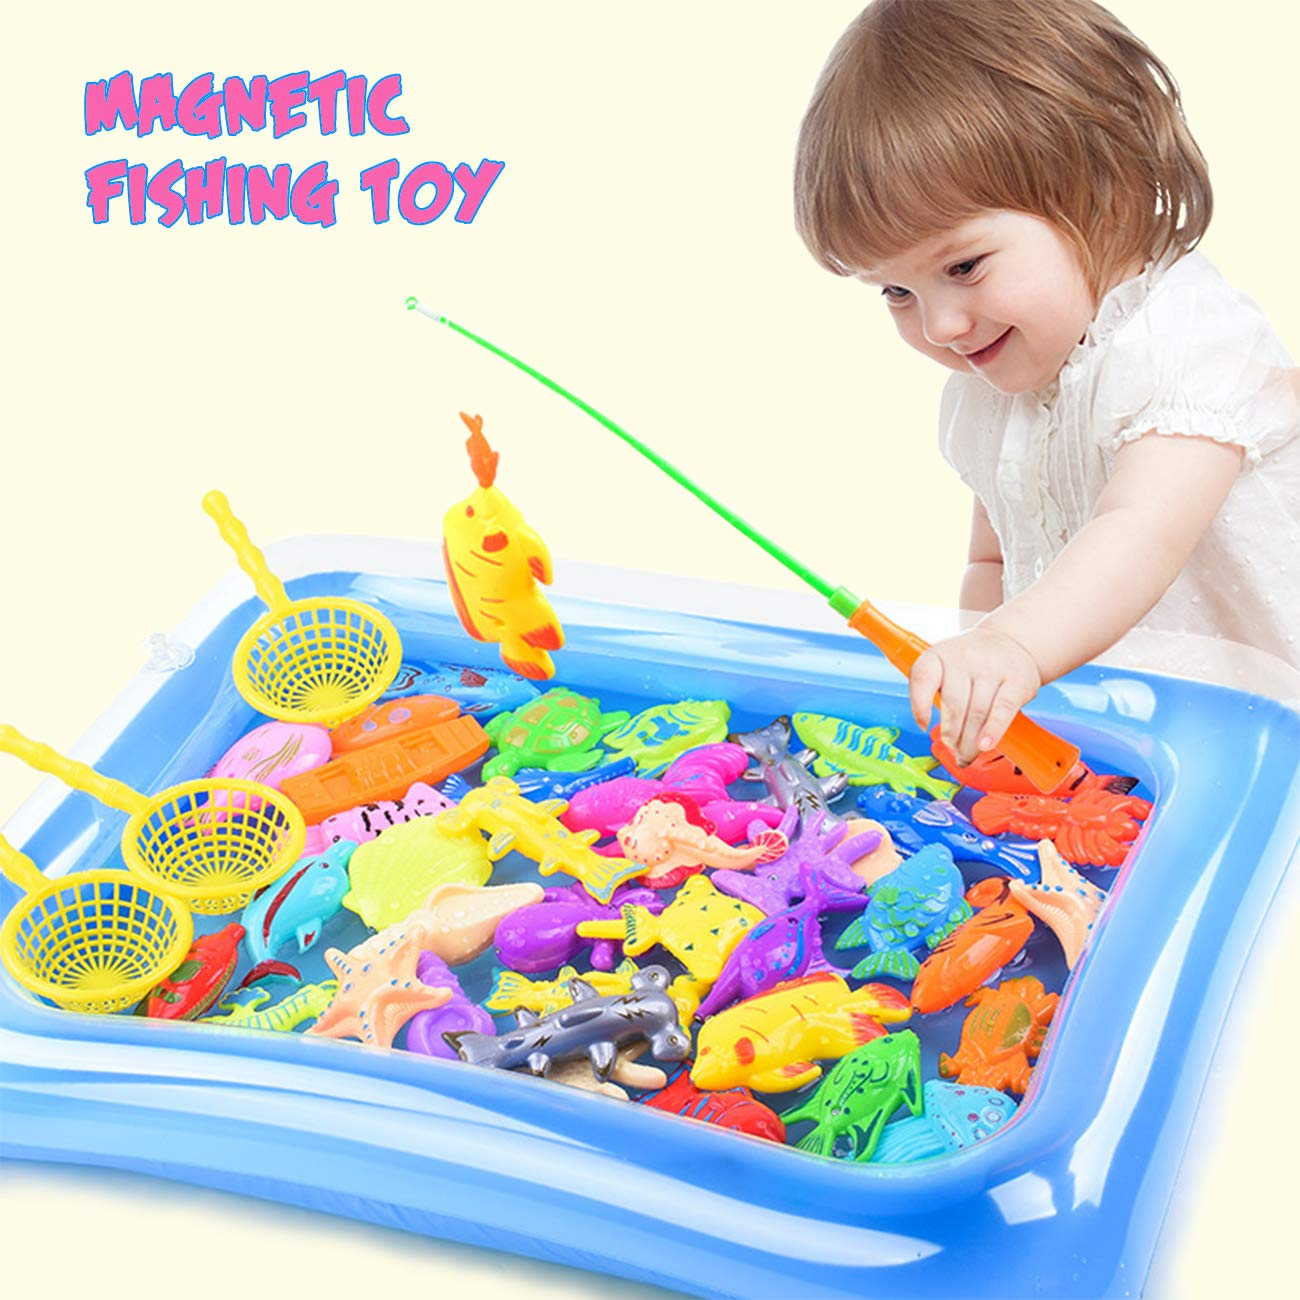 DC-BEAUTIFUL 32 Piece Fishing Toy Baby Bath Toy Magnetic Net Fishing Game Fishing Learning Education Play Set Outdoor Fun Best Gift for Children Fishing Game for Kids Party Favors